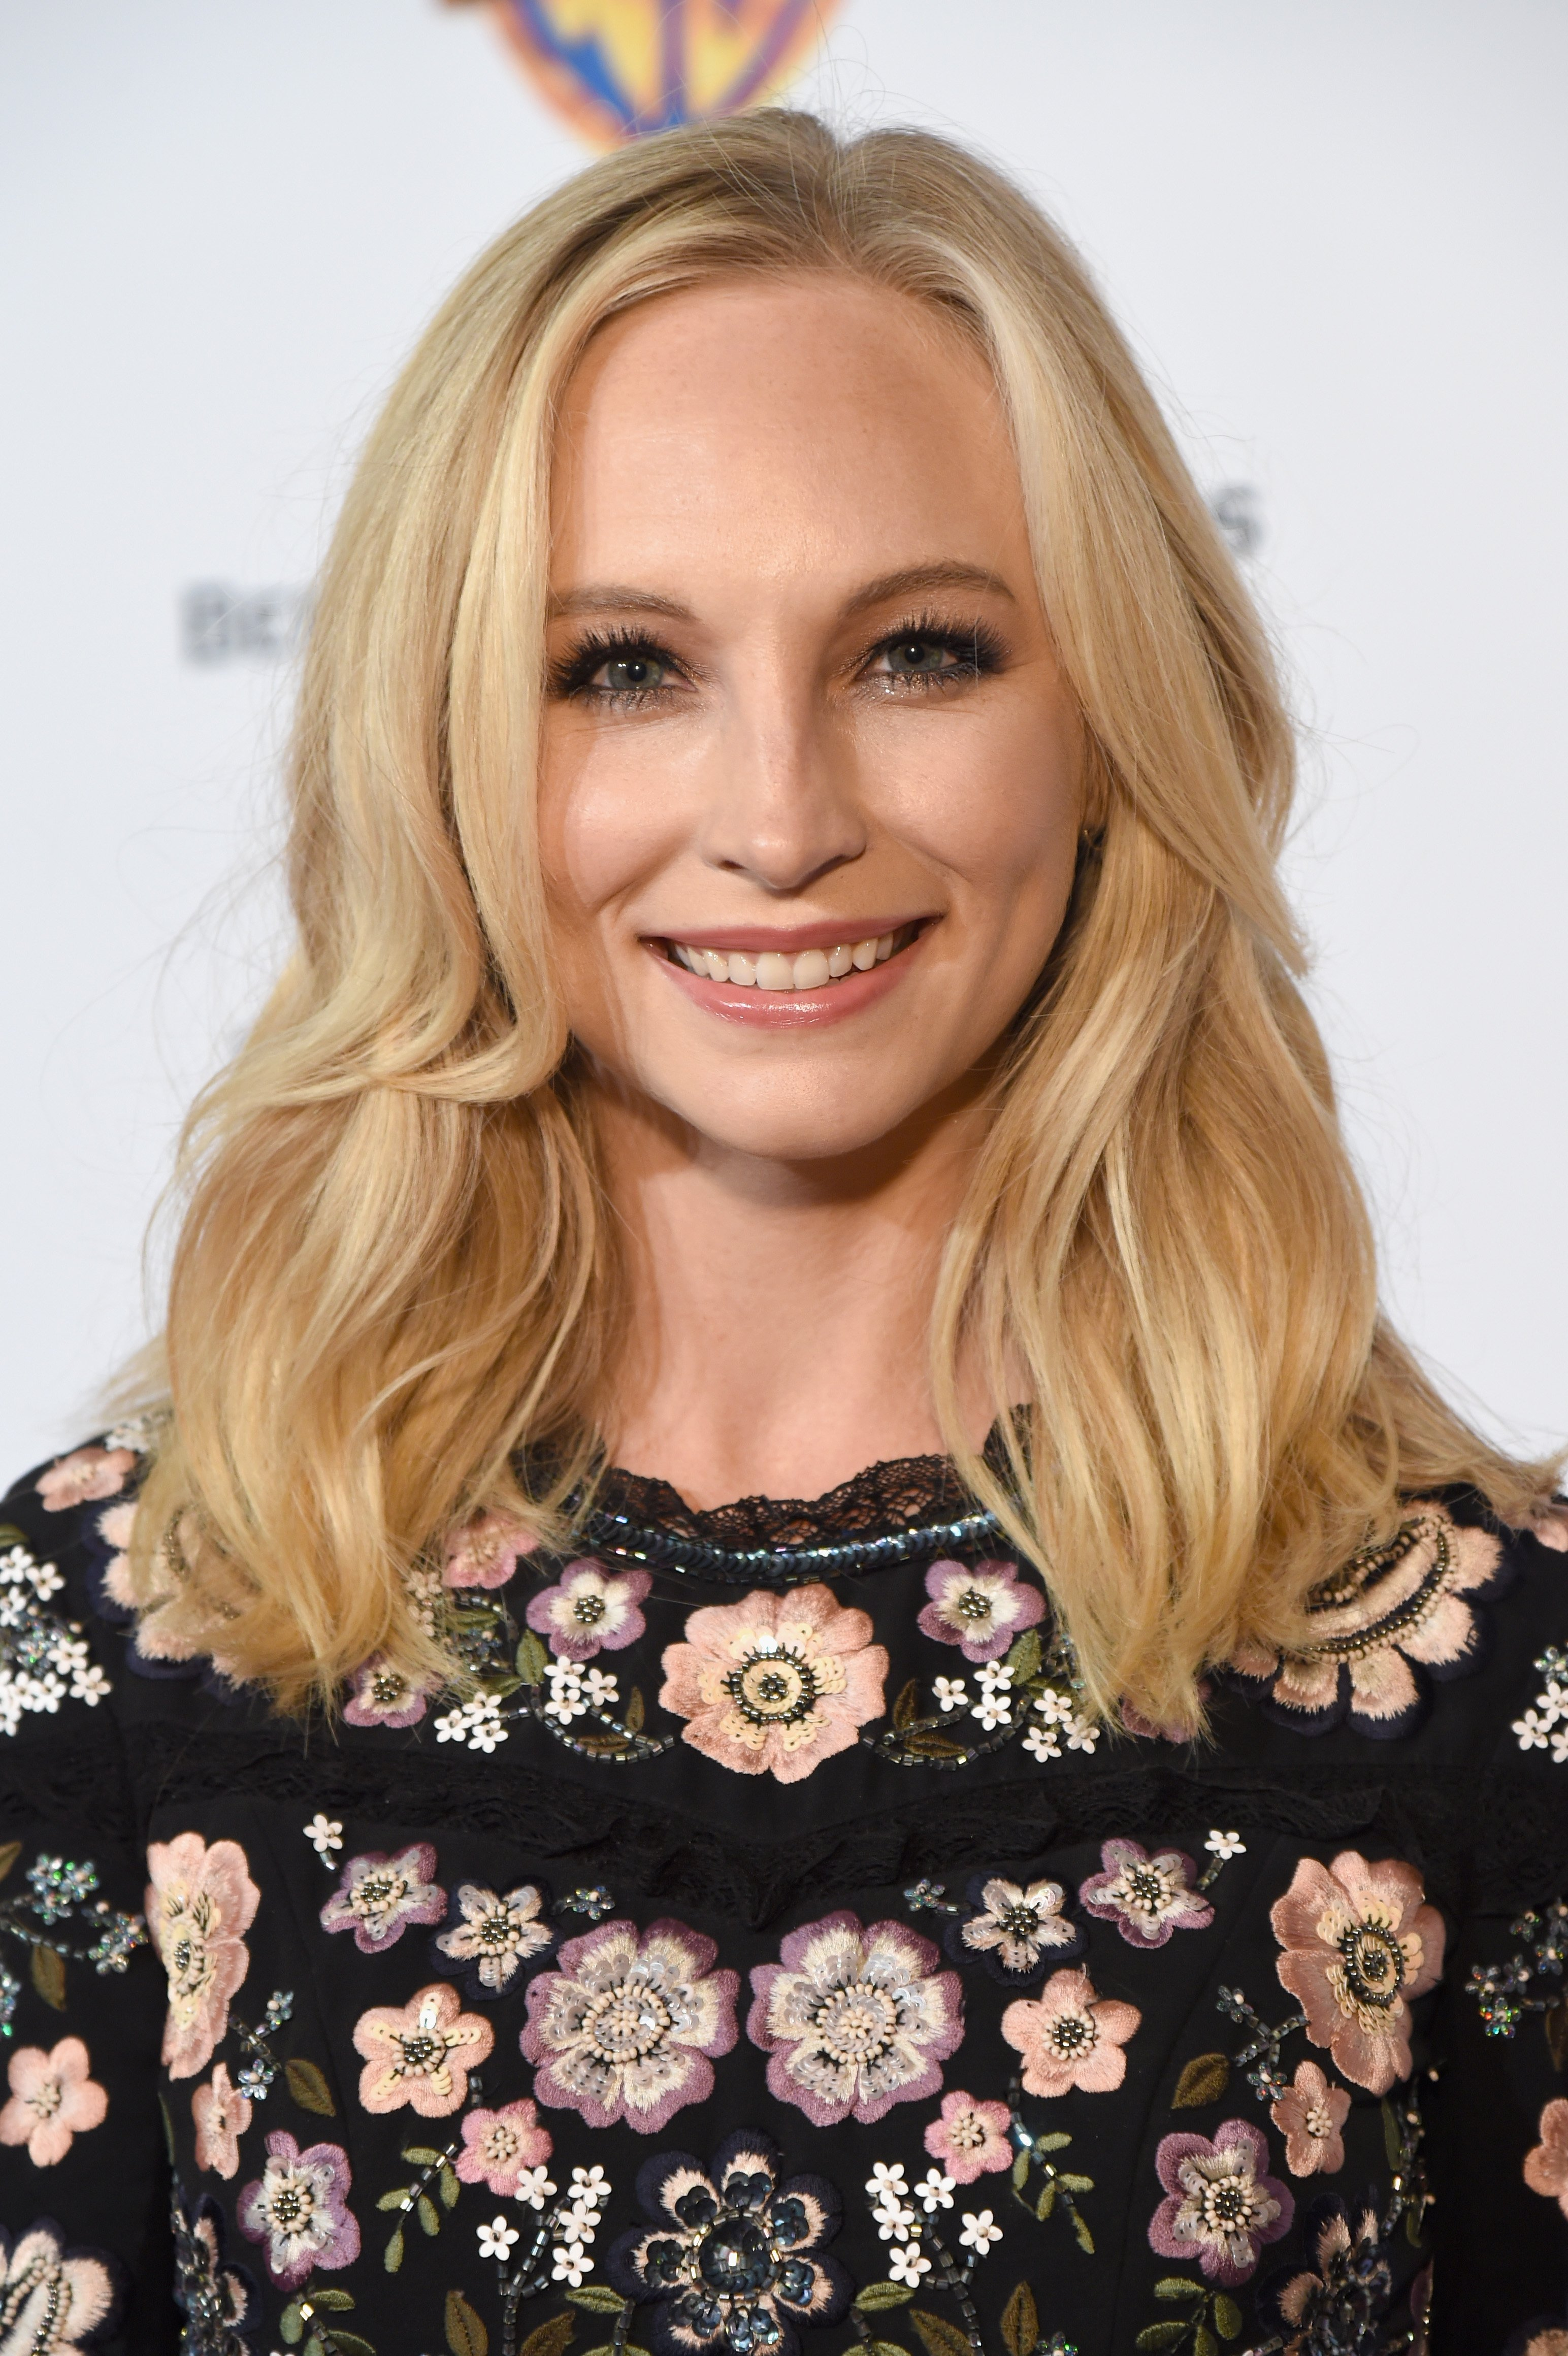 Candice King attends the Barbara Berlanti Heroes Gala Benefitting FCancer at Warner Bros. Studios on October 13, 2018 in Burbank, California | Photo: Getty Images